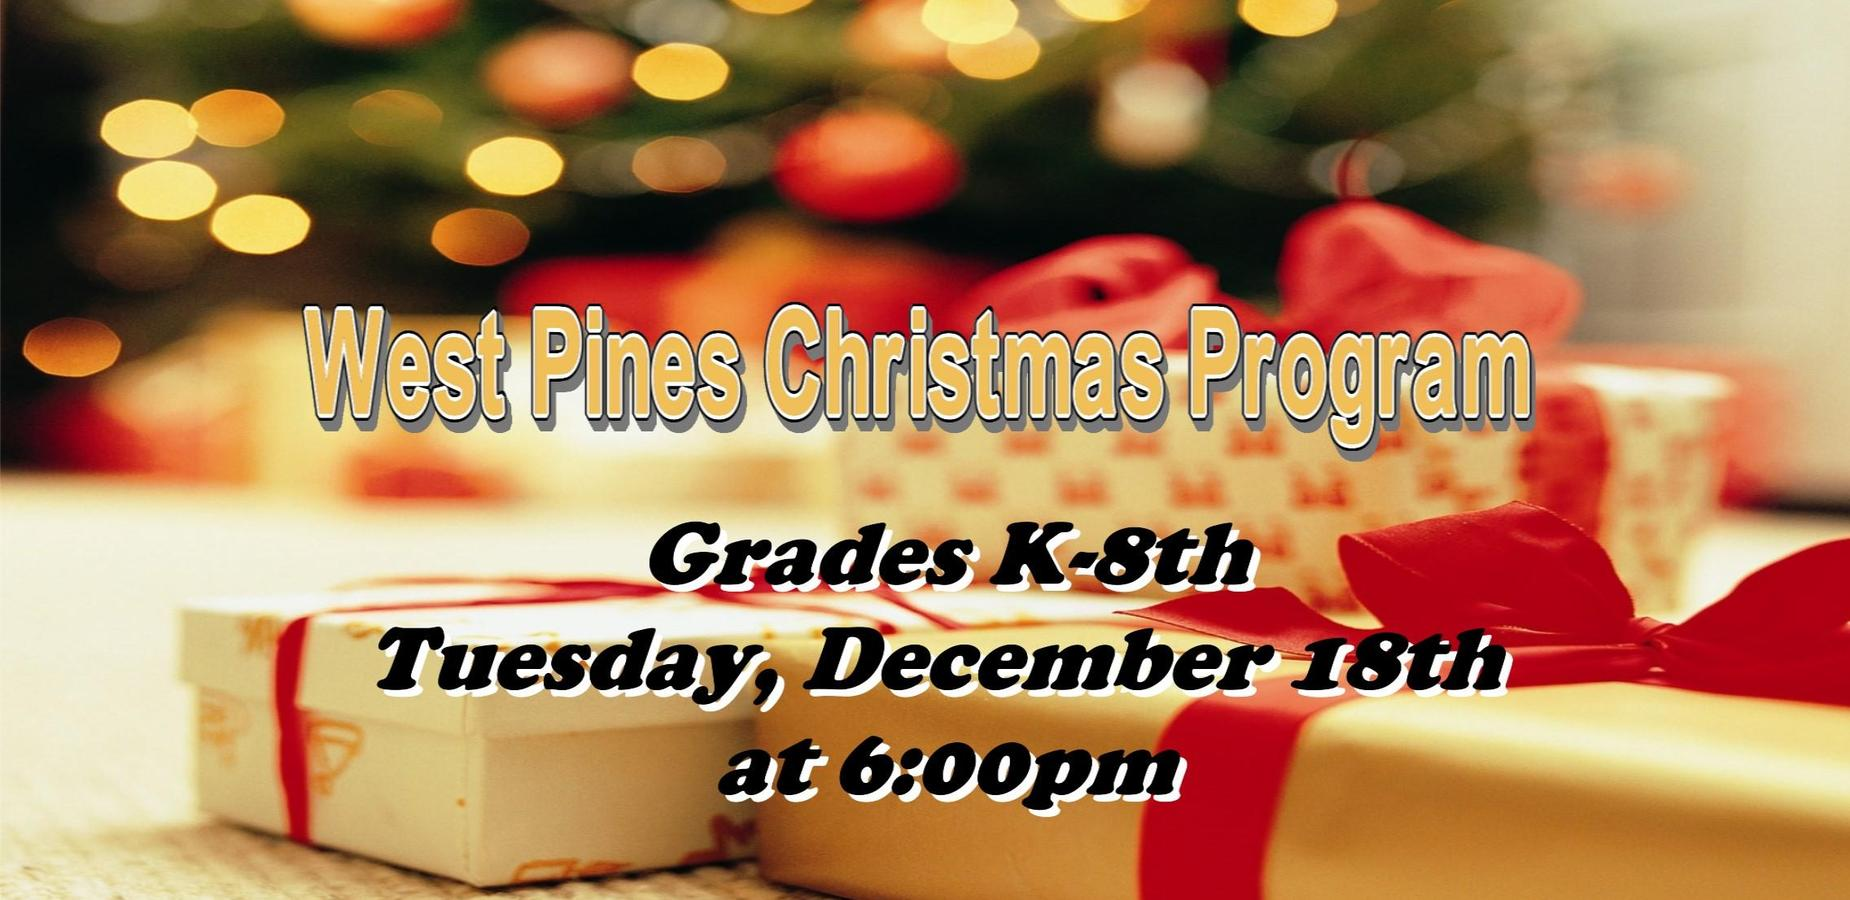 West Pines Christmas Program